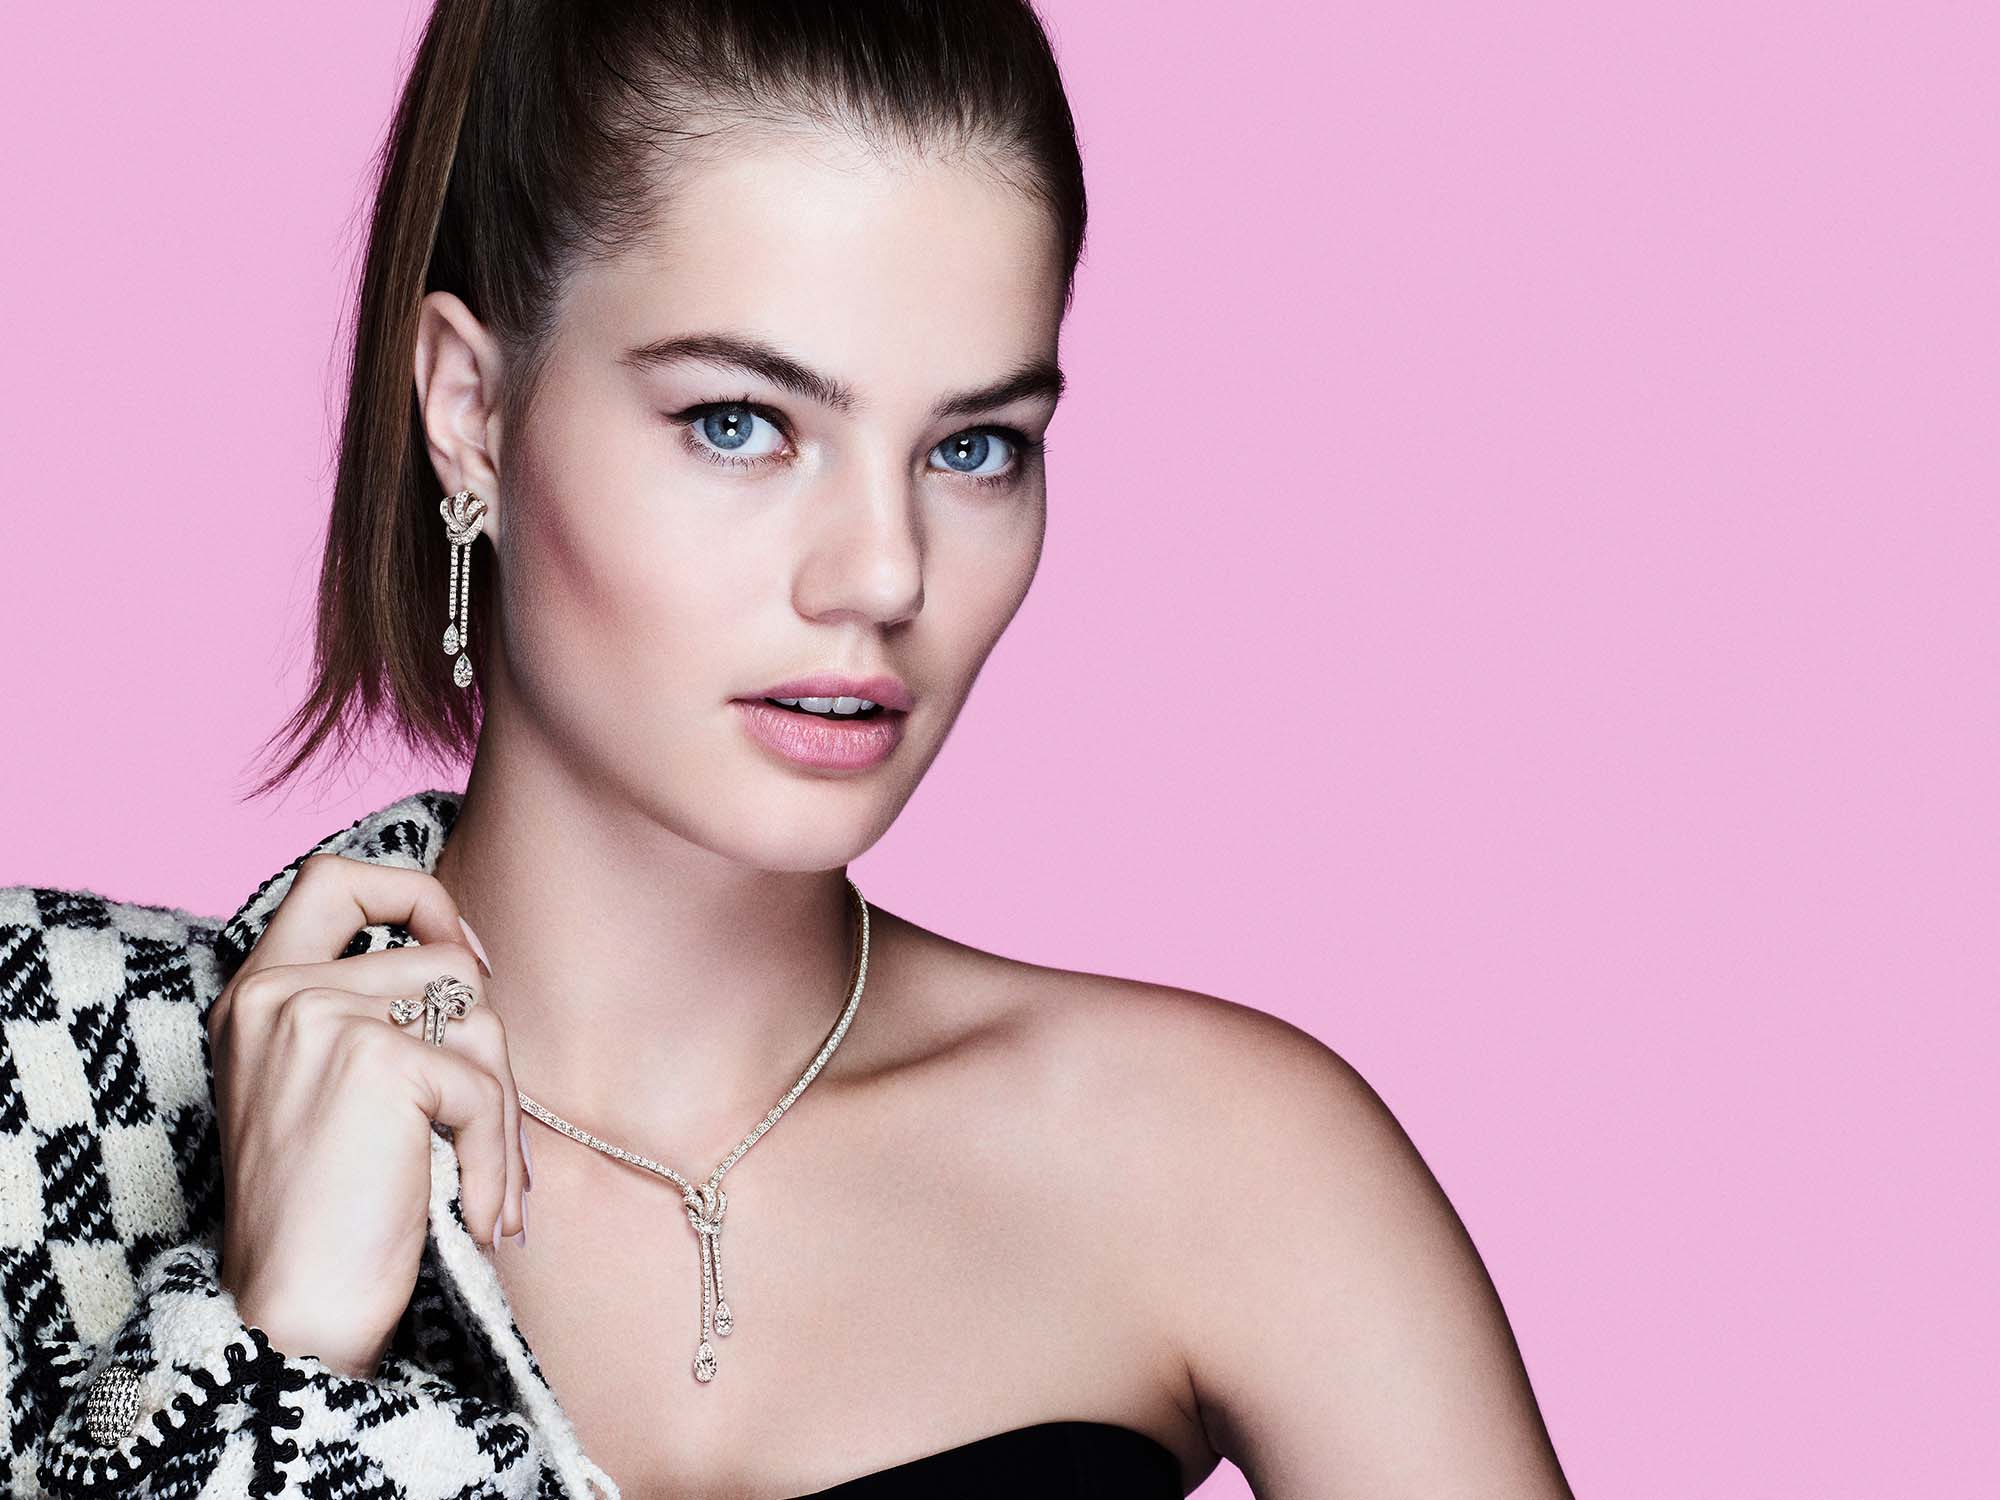 Model wearing Graff Tilda's Bow jewellery collection diamond ring, earrings and necklace